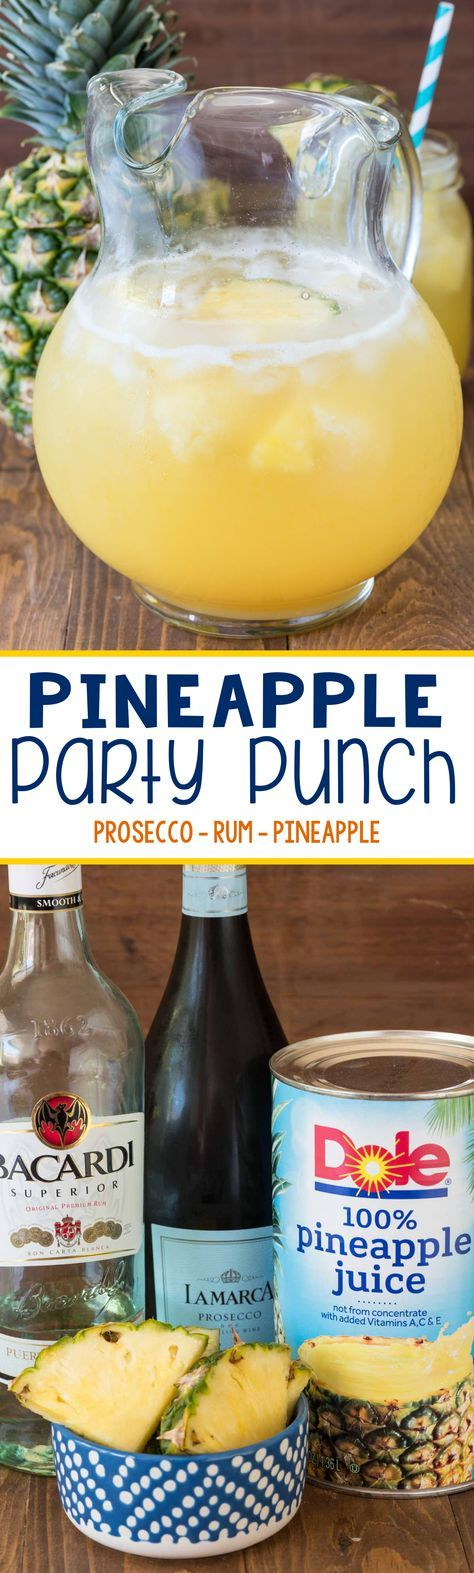 Easy punch recipes for retirement party